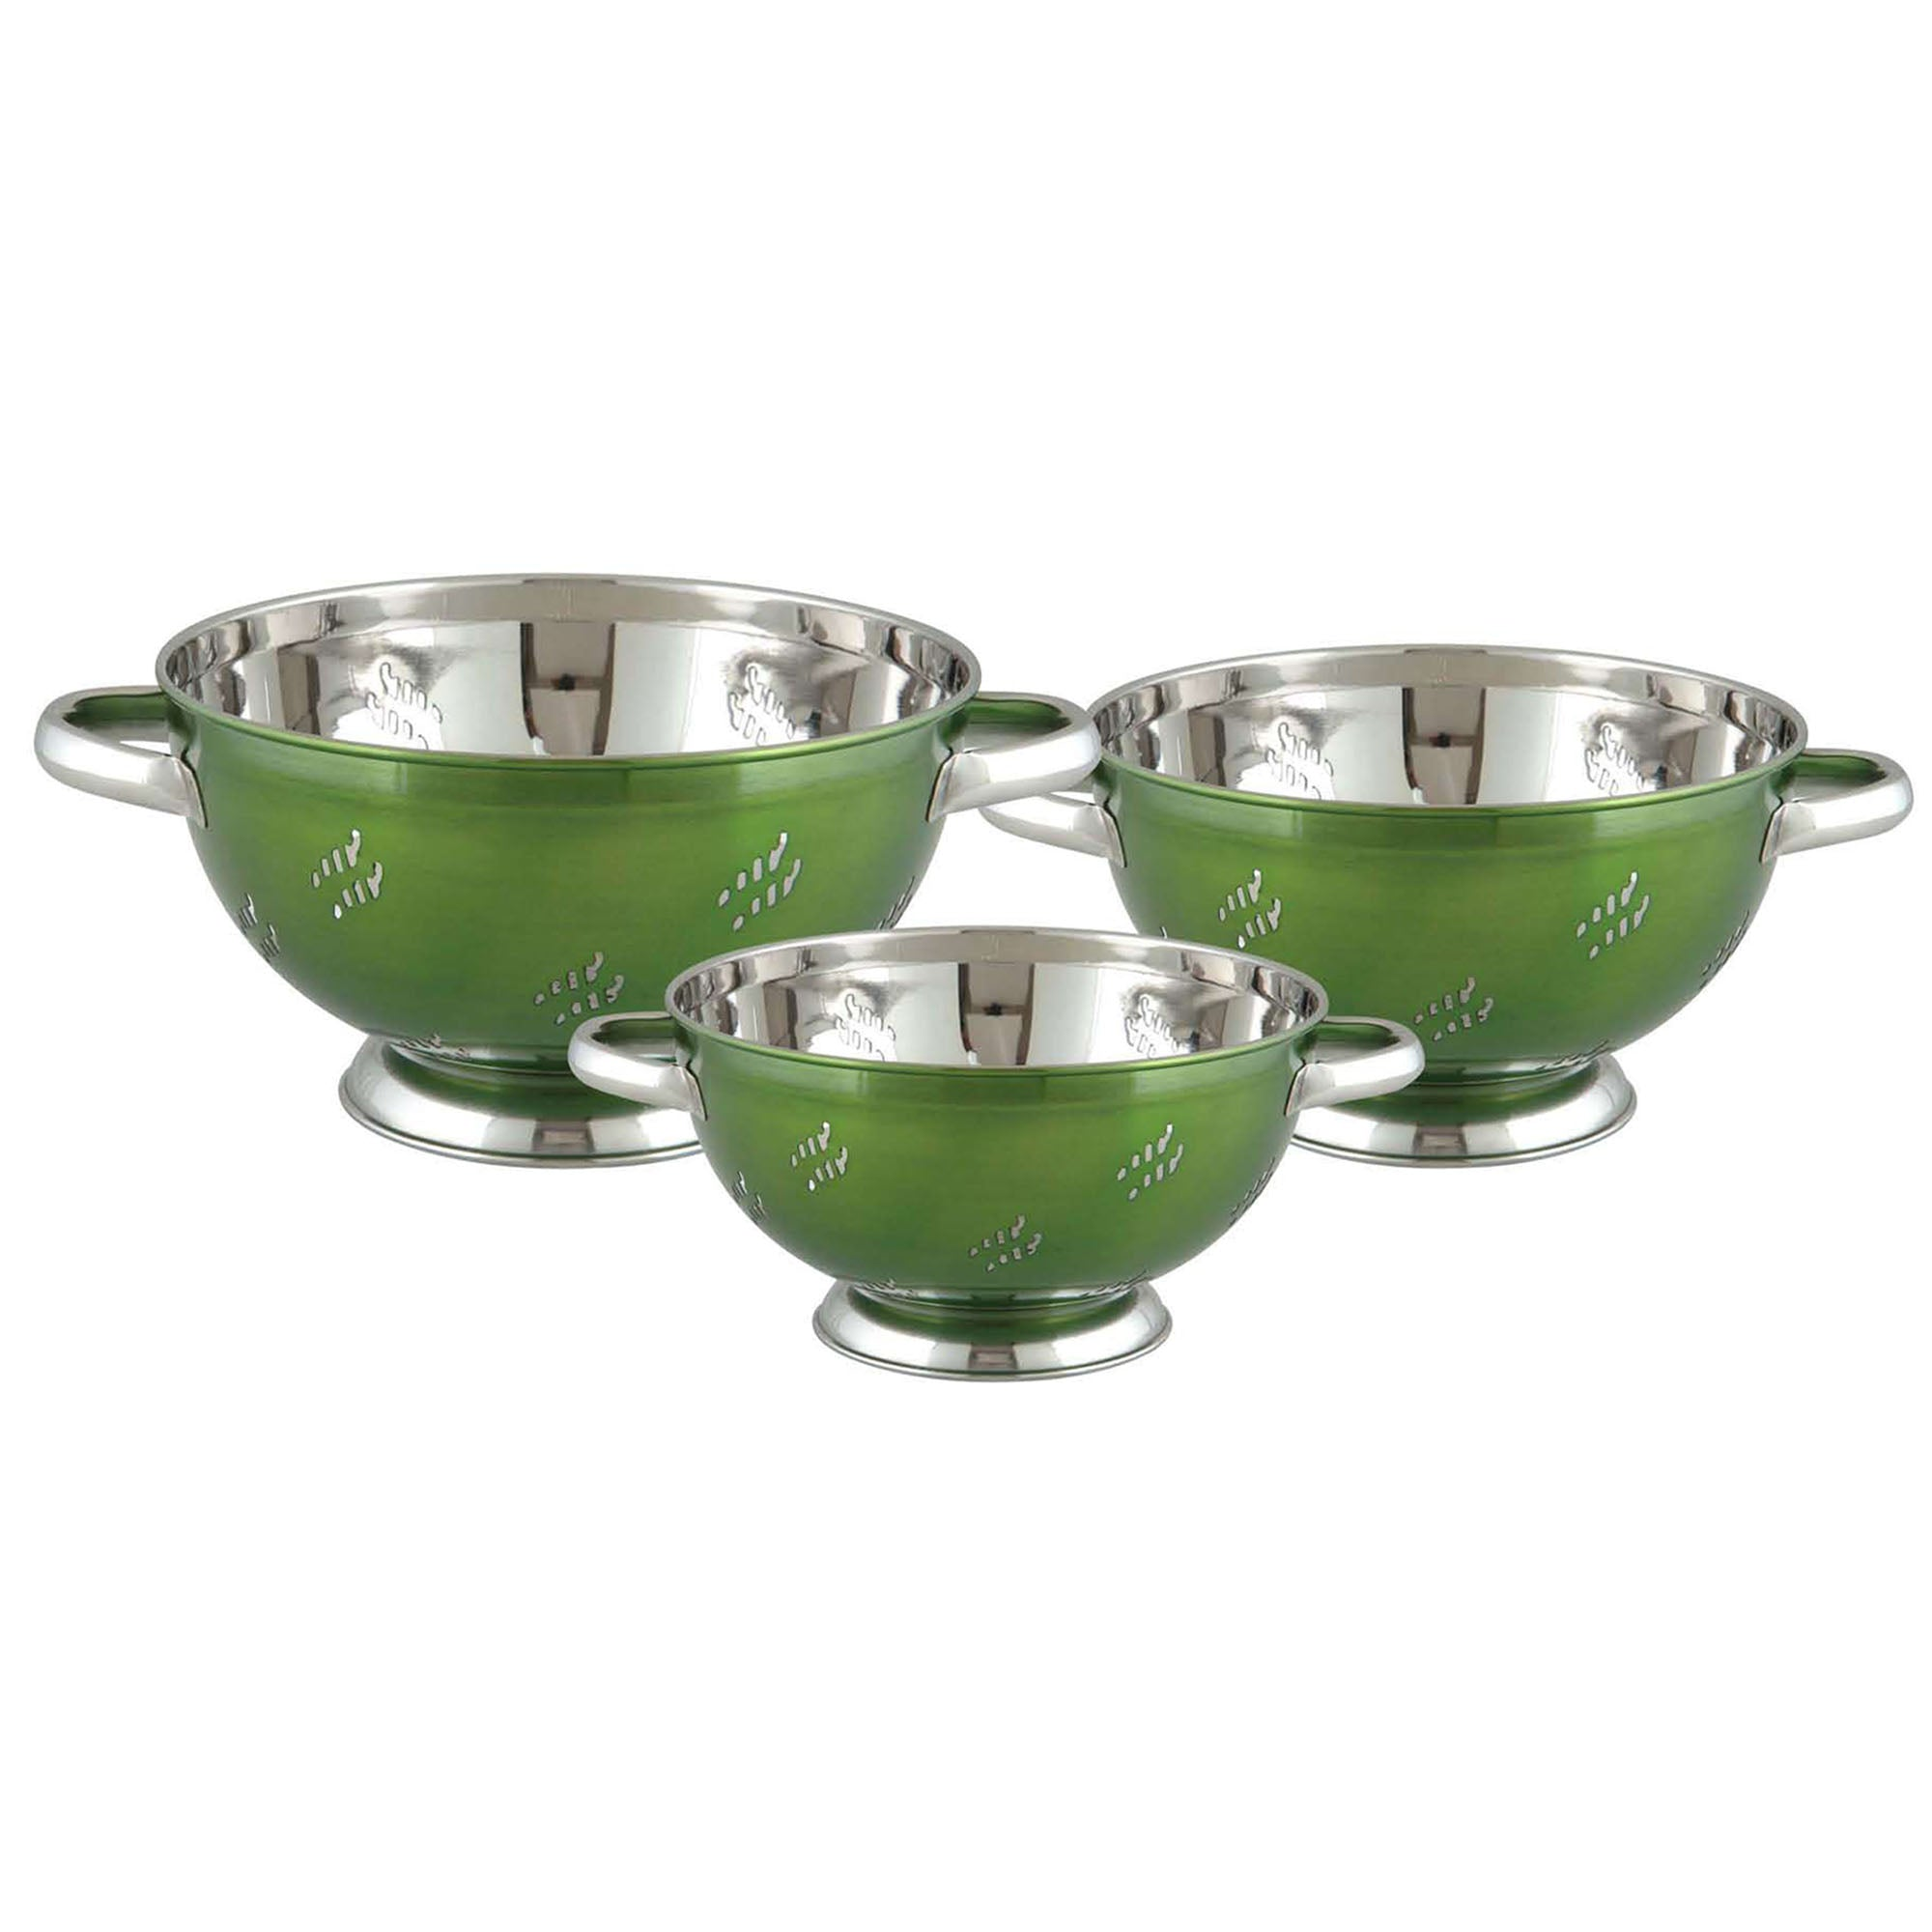 COLANDER 5 QT CHILLI STAINLESS STEEL GREEN COLOR COATING - Nusteel